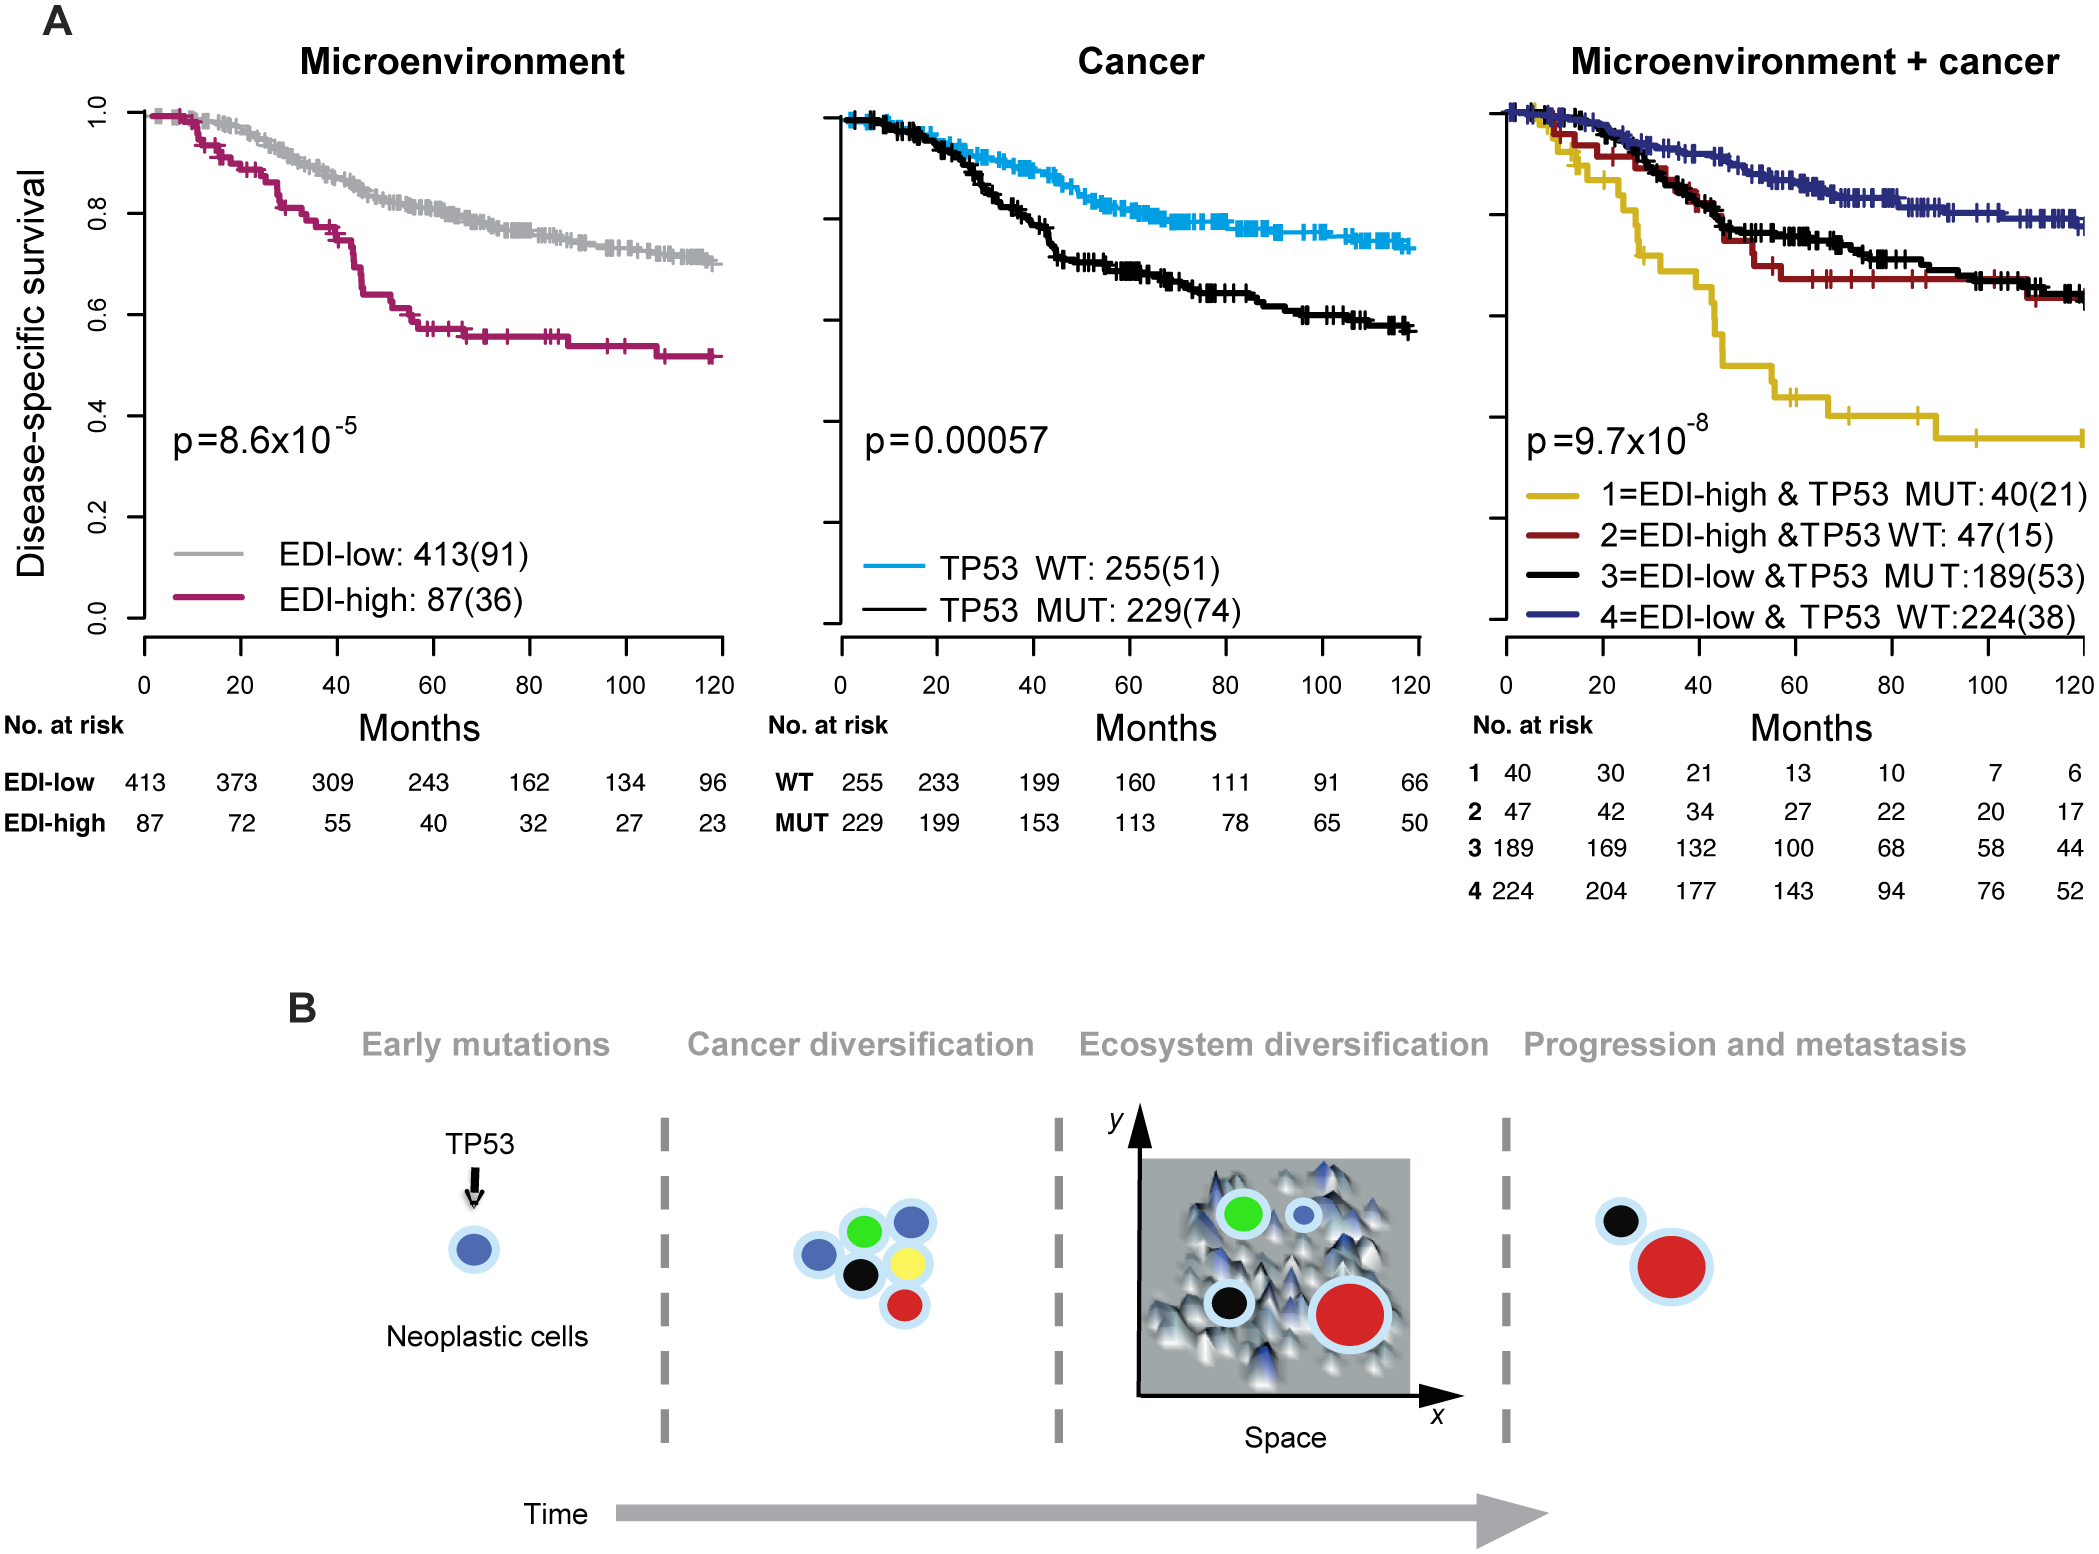 Accumulated prognostic value of microenvironmental heterogeneity and cancer <i>TP53</i> mutation in high-grade breast tumors.